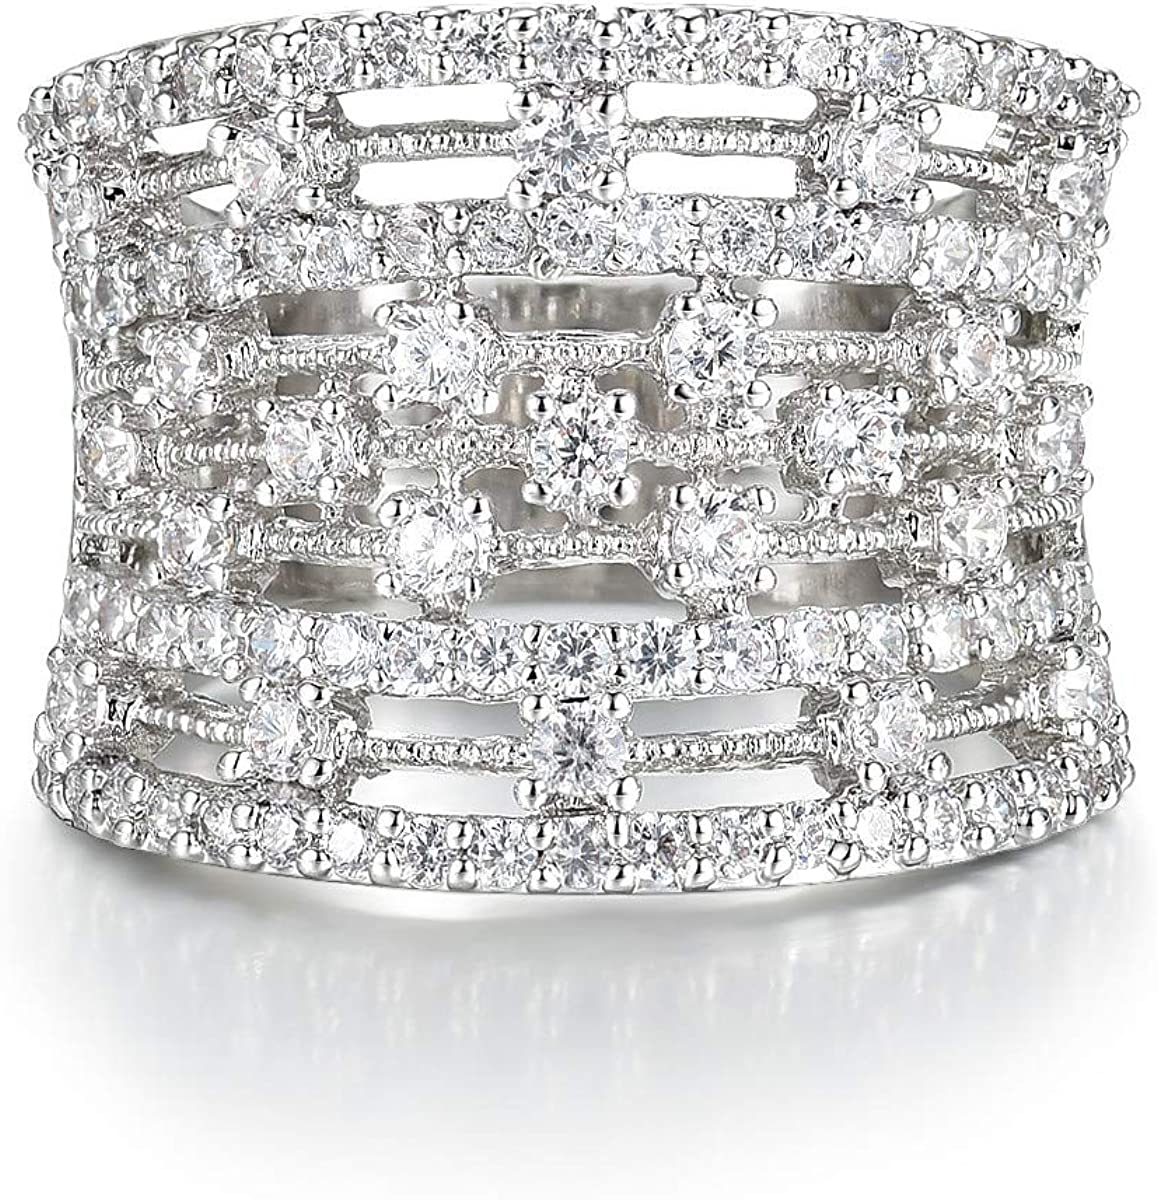 Delicin Jewelry Rhodium Plated Low price Popular product Cubic Eternity Band Cock Zirconia